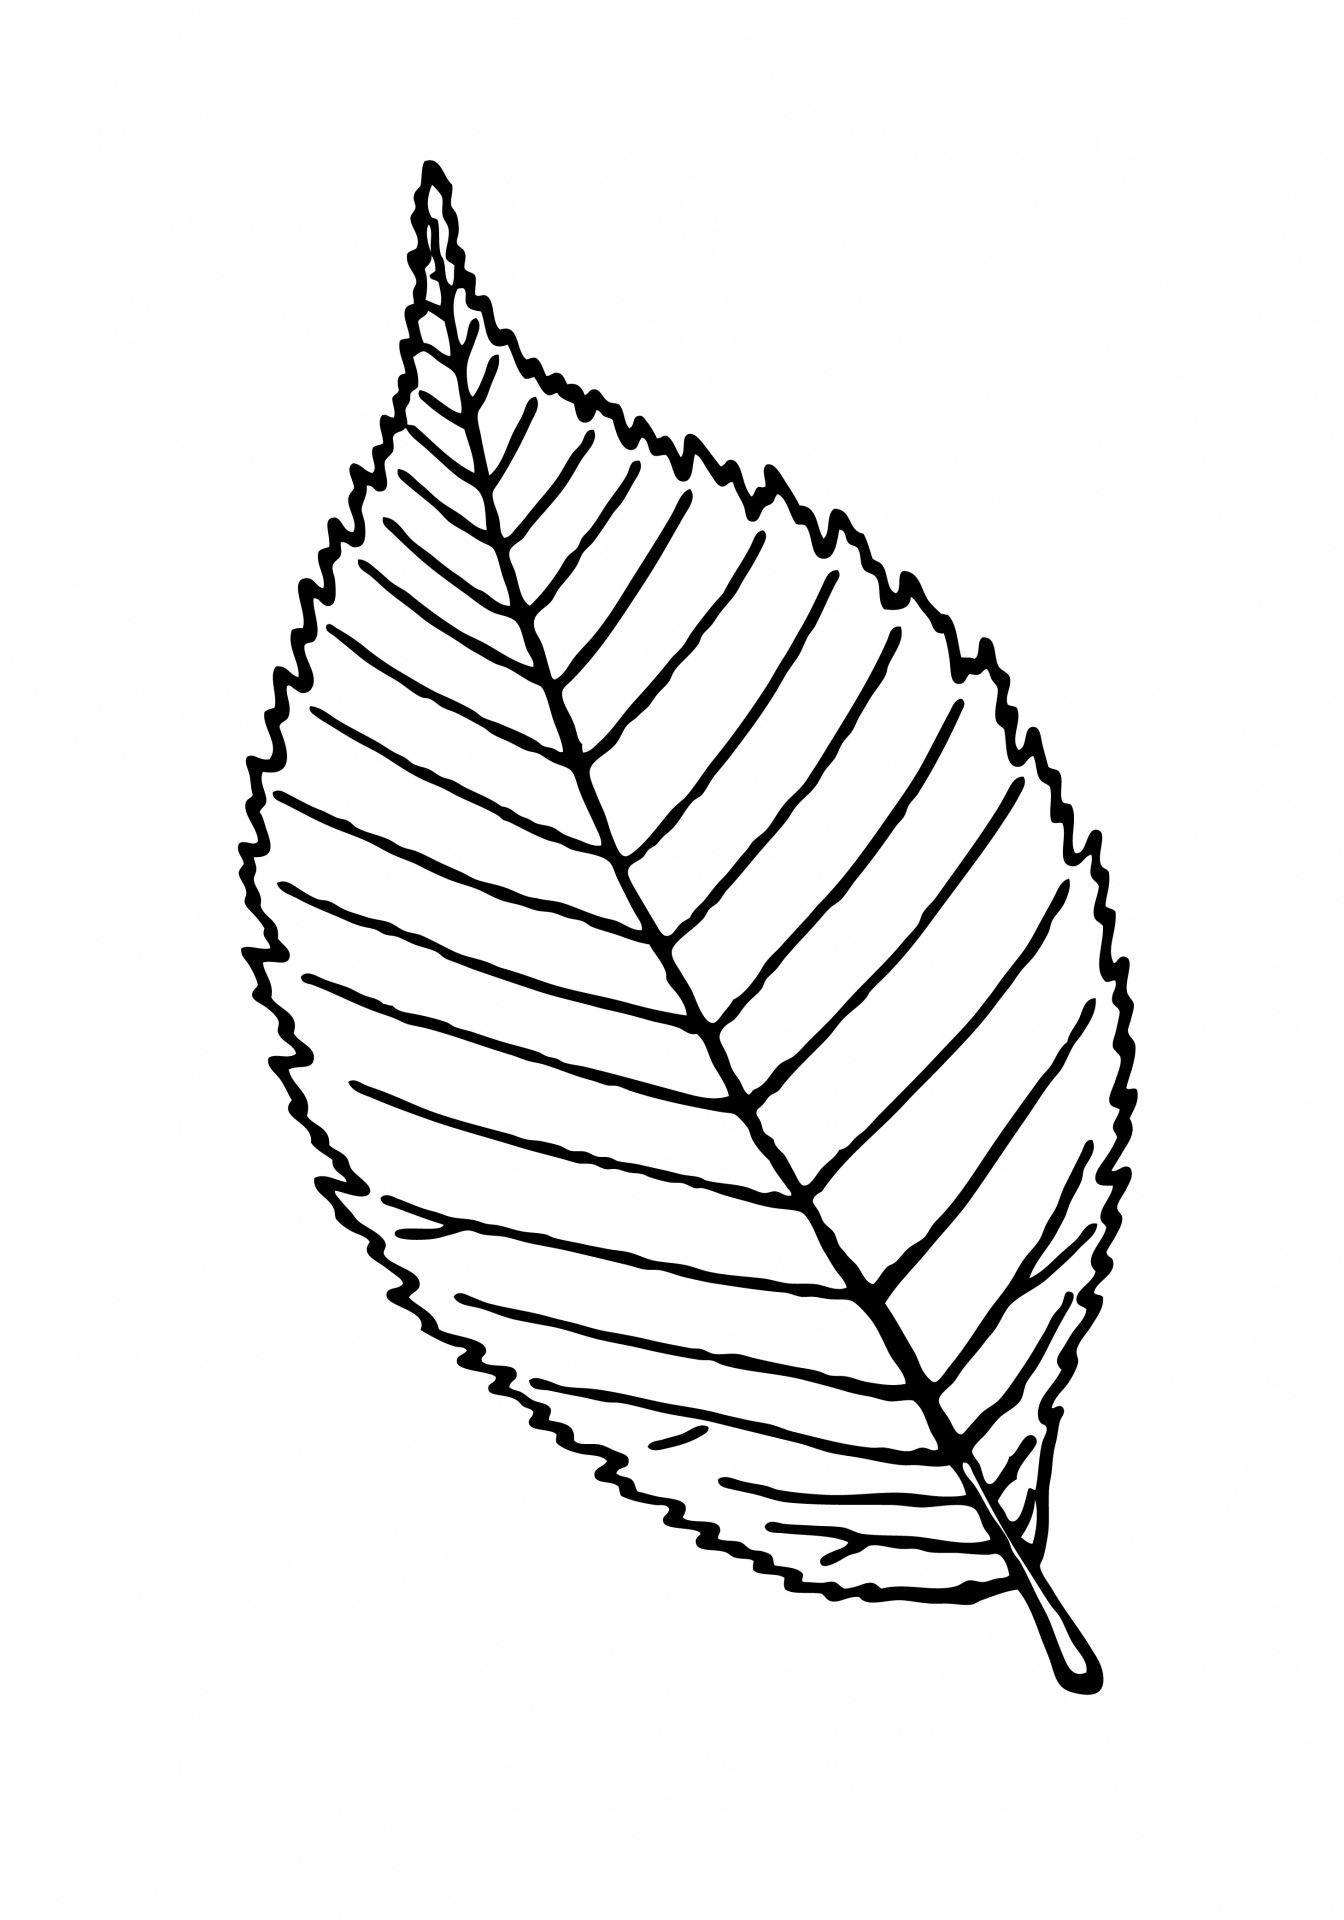 1344x1920 Leaf Outline Clipart Illustration Free Stock Photo